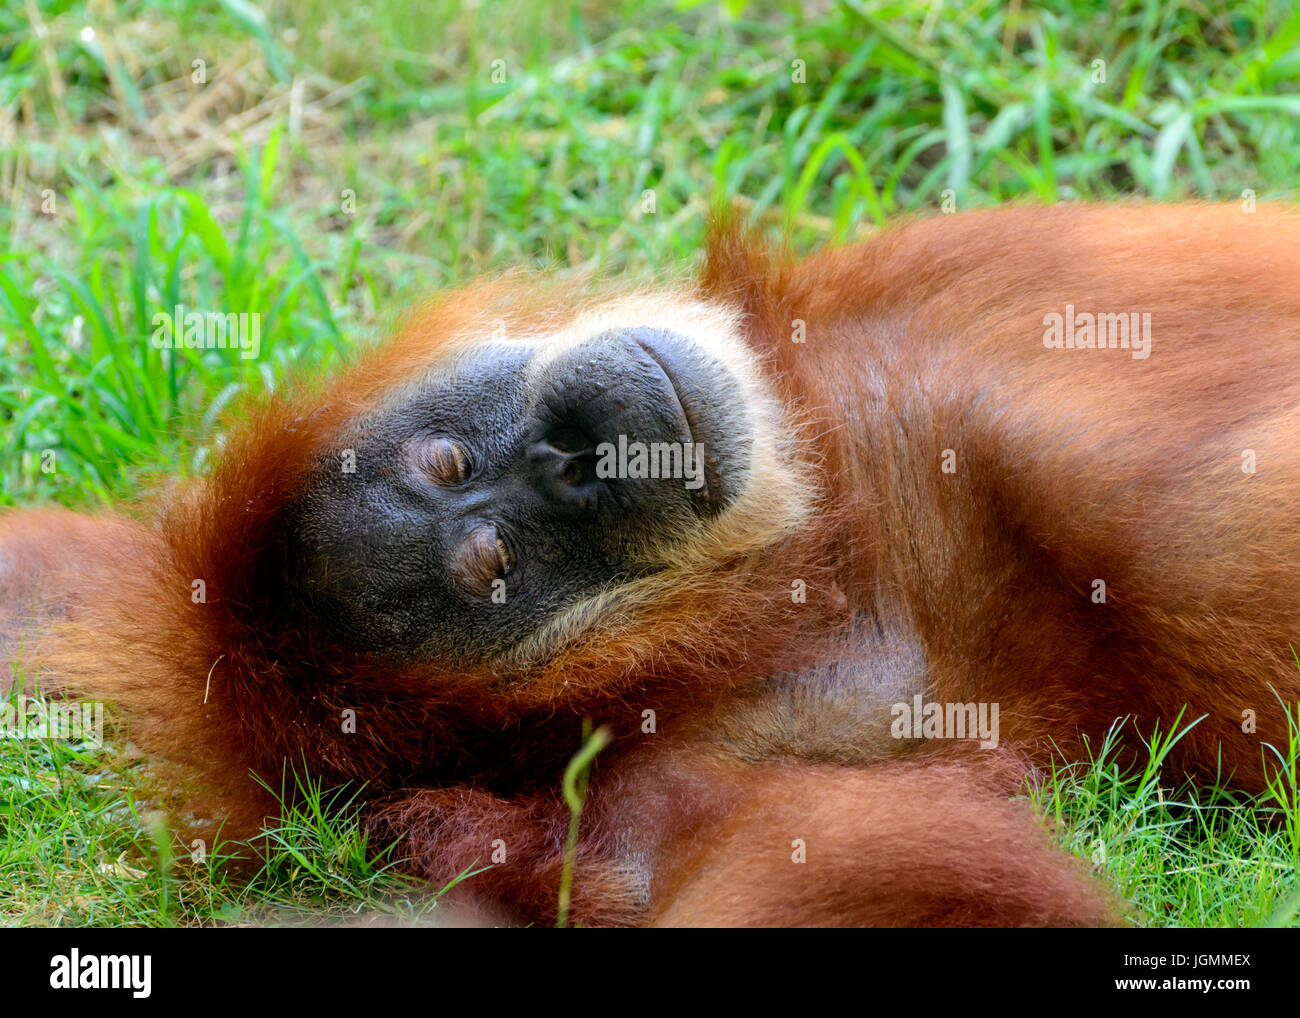 Orangutan, orang-utan, orangutang, or orang-utang, Asian great apes native to Indonesia and Malaysia, in the rainforests - Stock Image